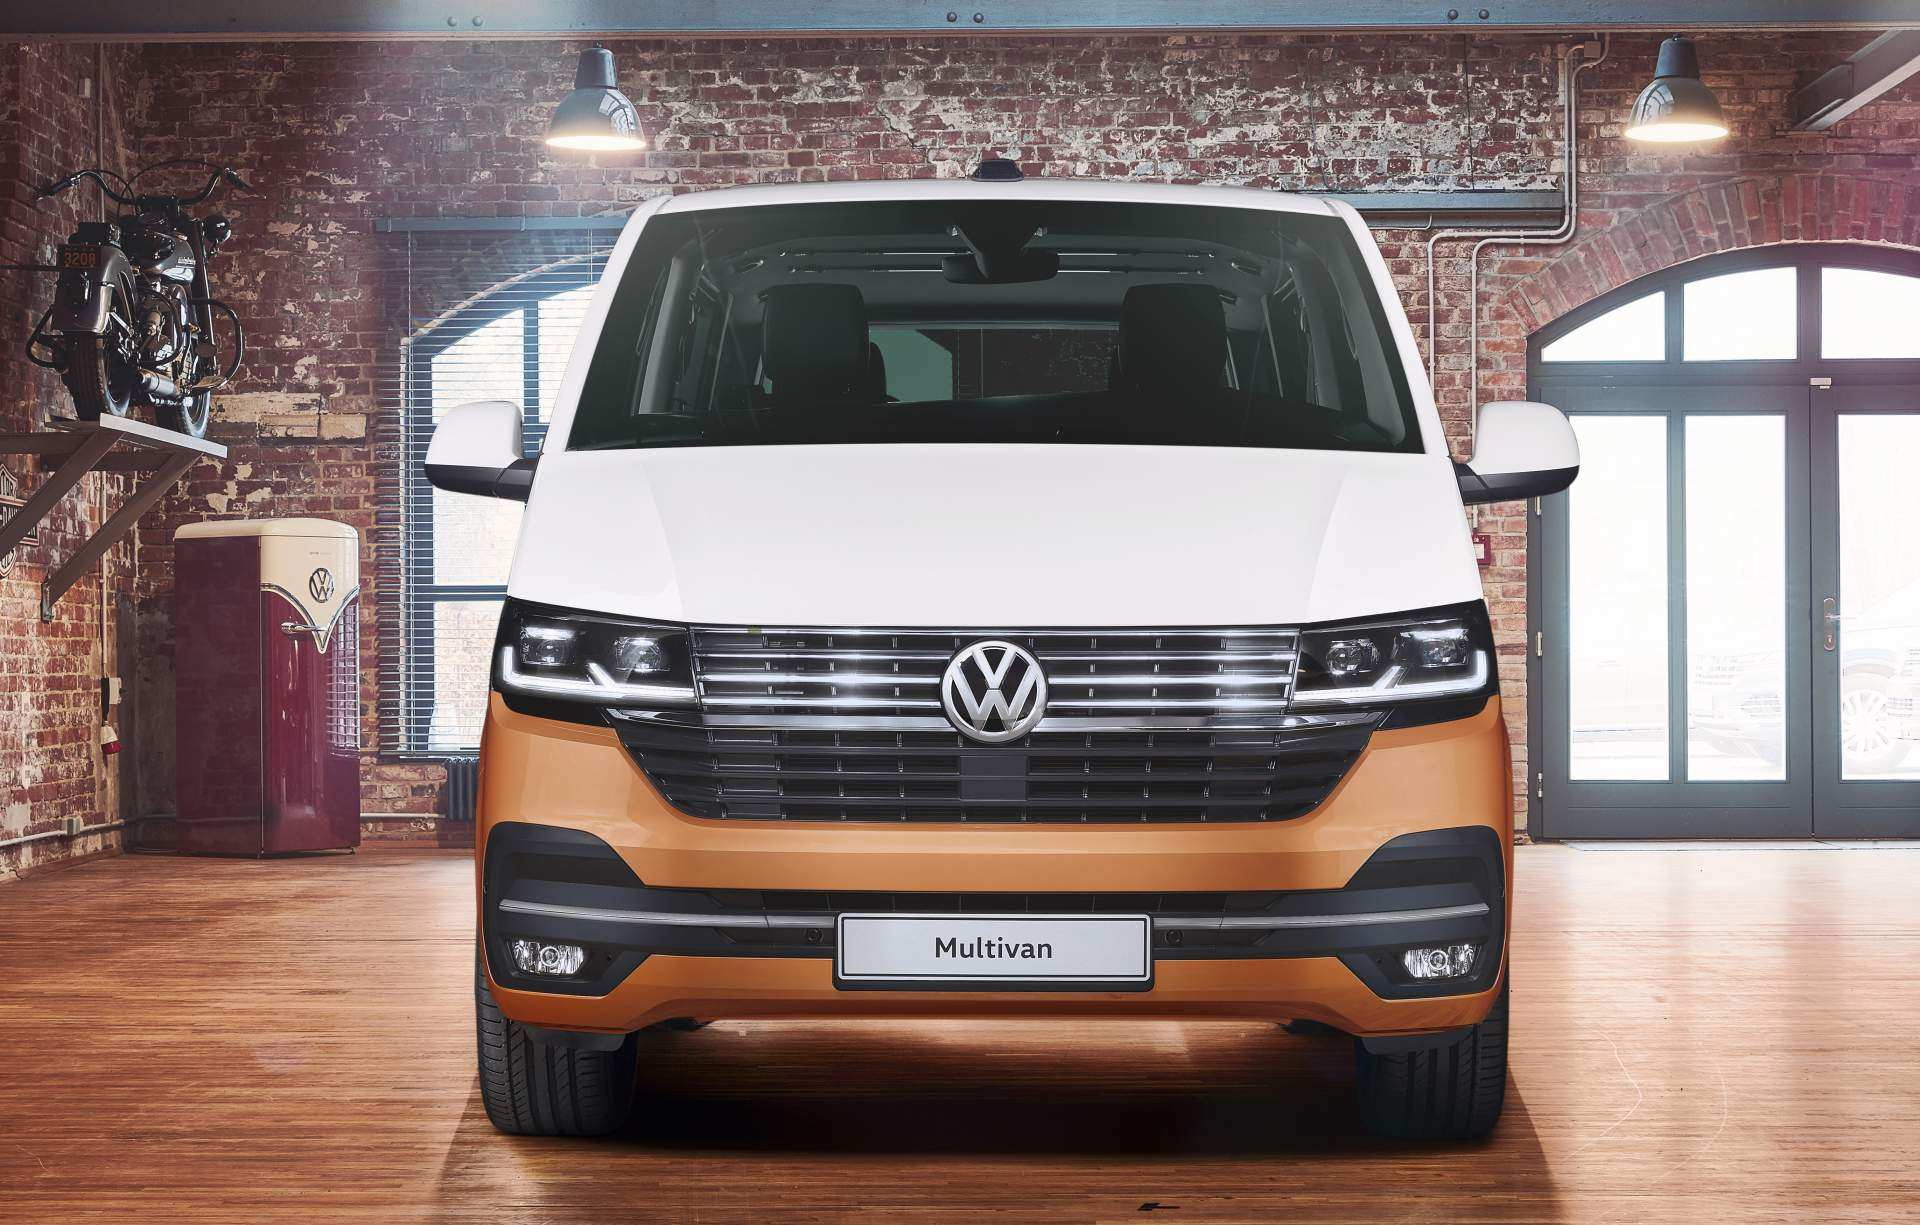 43 New 2020 VW Transporter Release Date